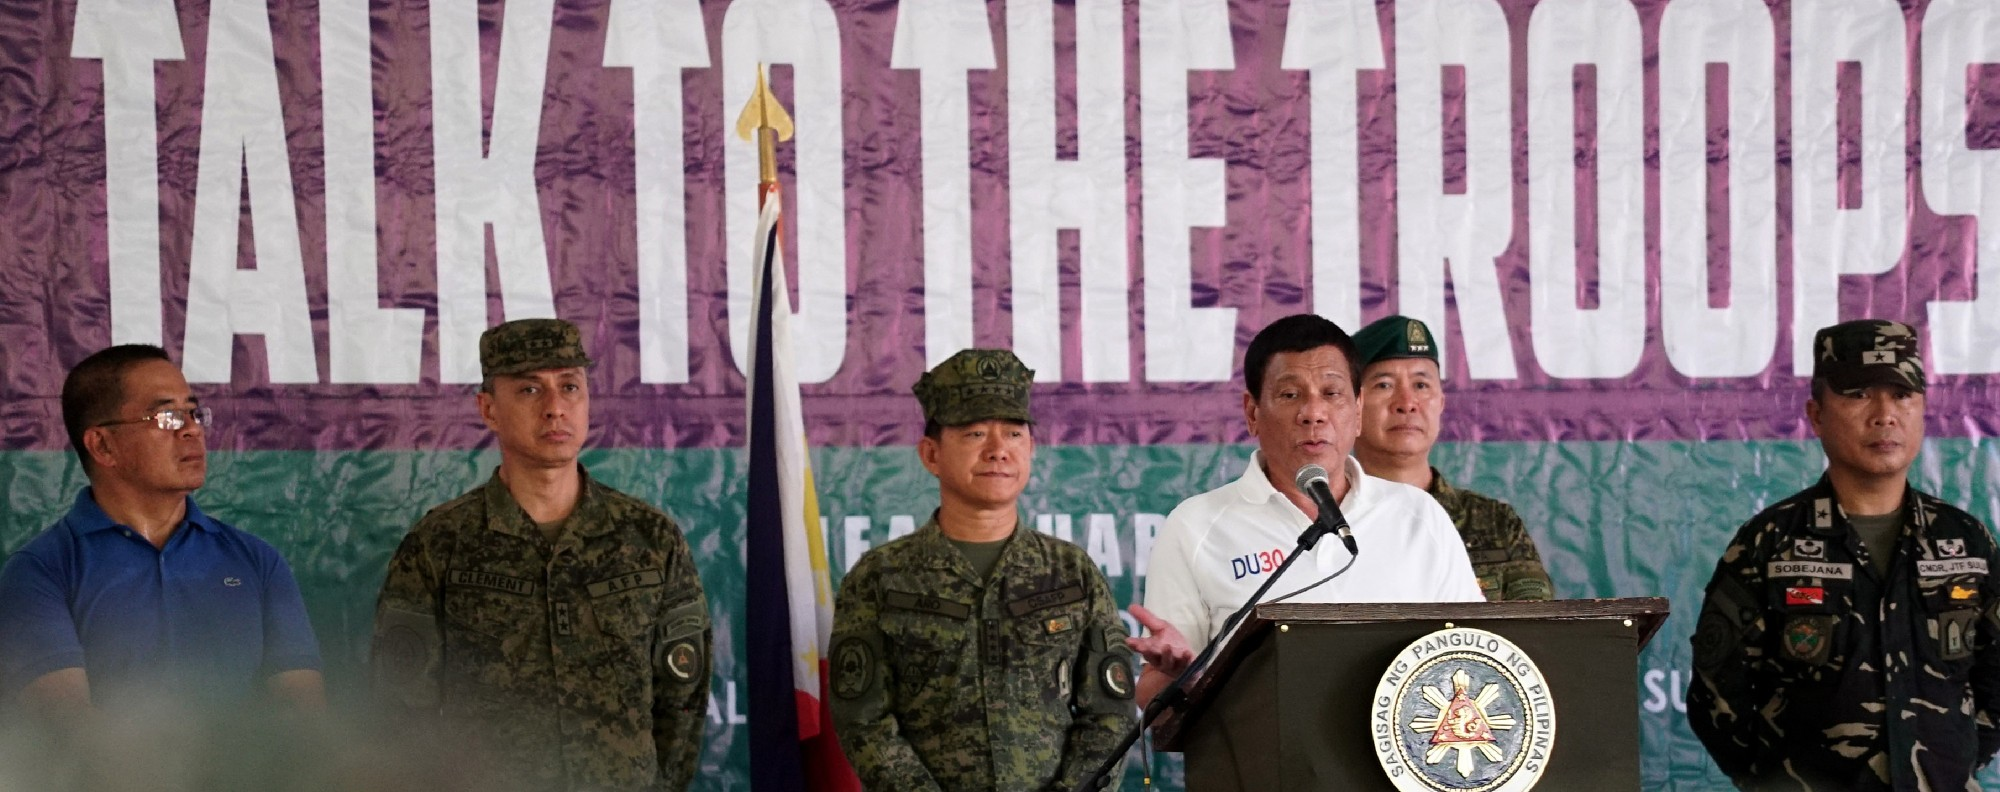 Duterte enjoys strong support from the military. Photo: AFP